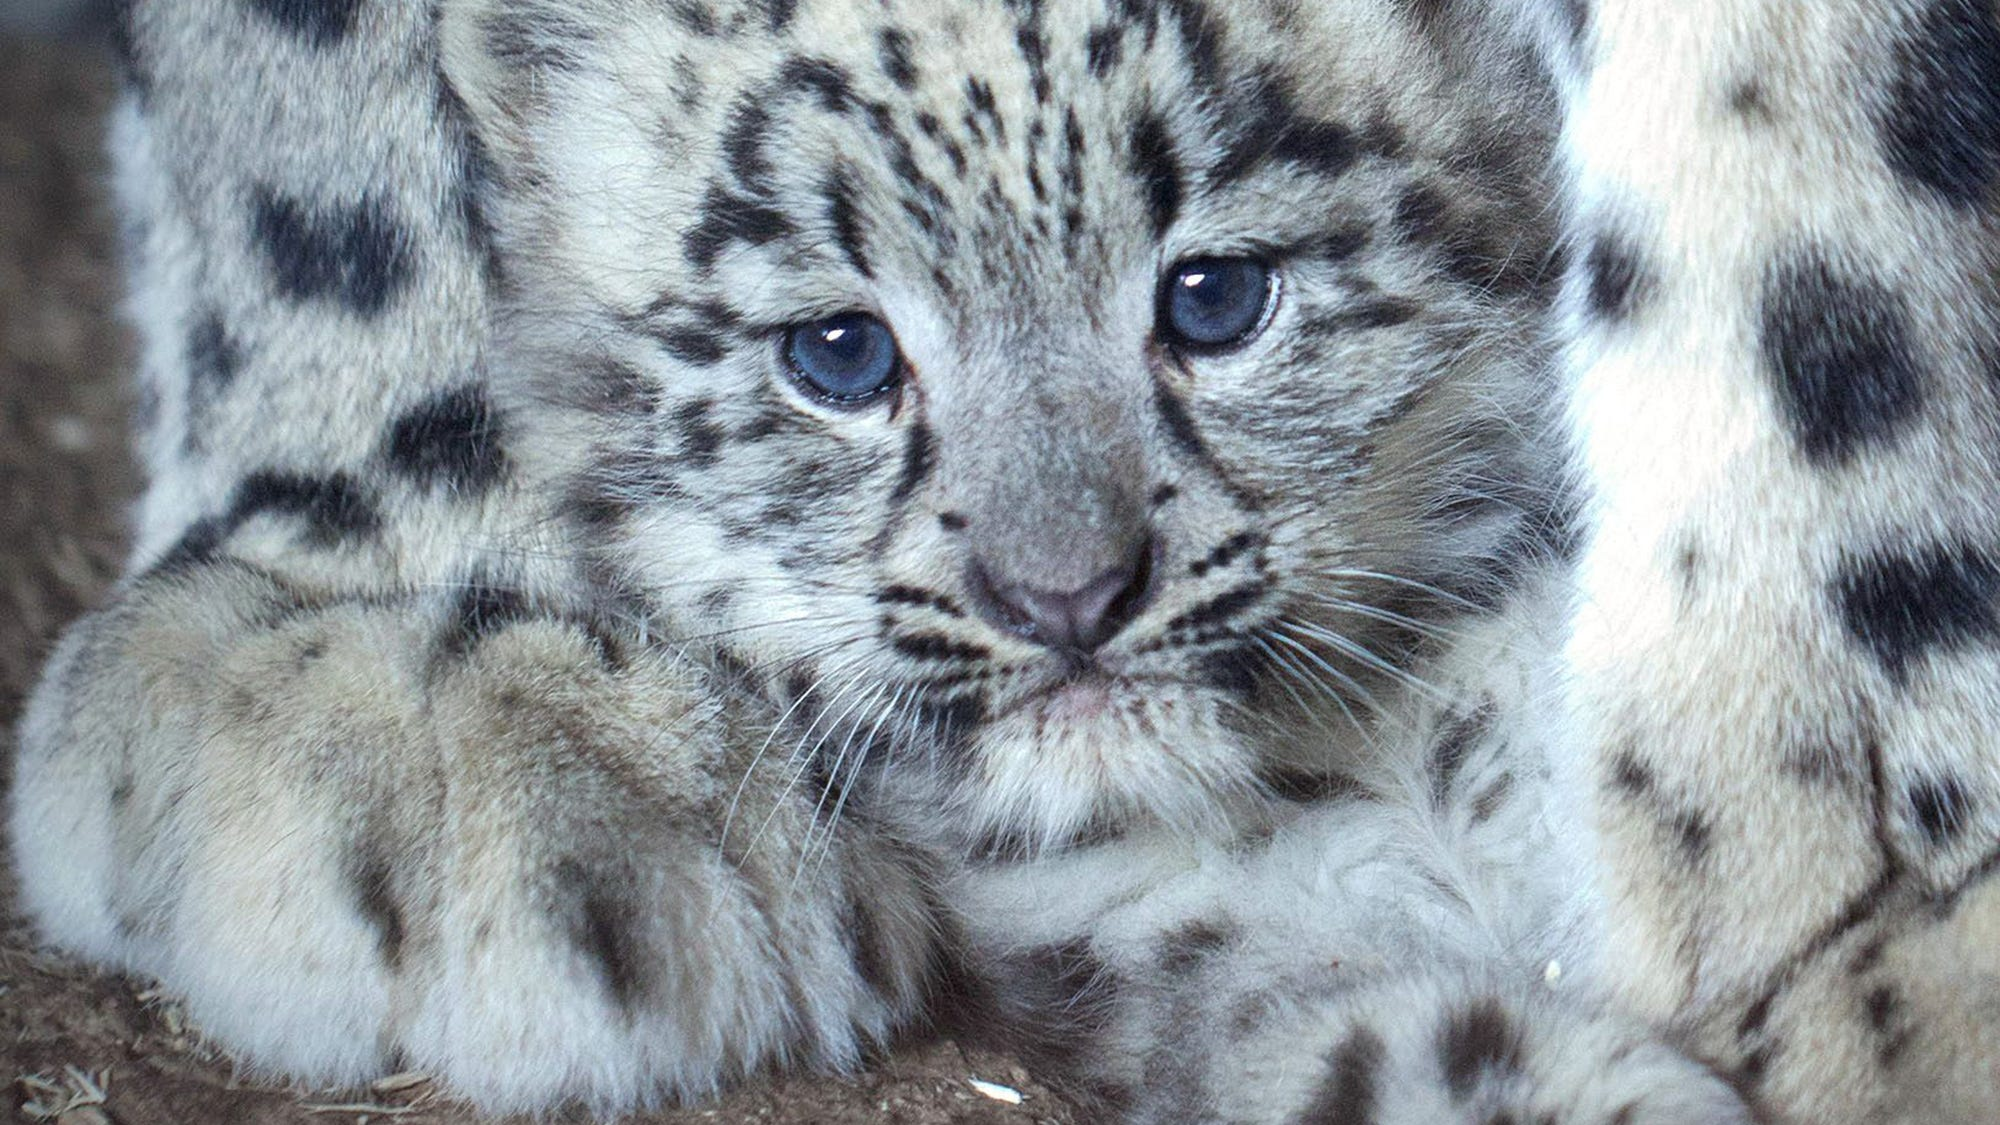 Left In Contrast To Many Of The Other Great Cats Dr Schaller Told New York Times I Don T Know A Single Case Snow Leopard That Would